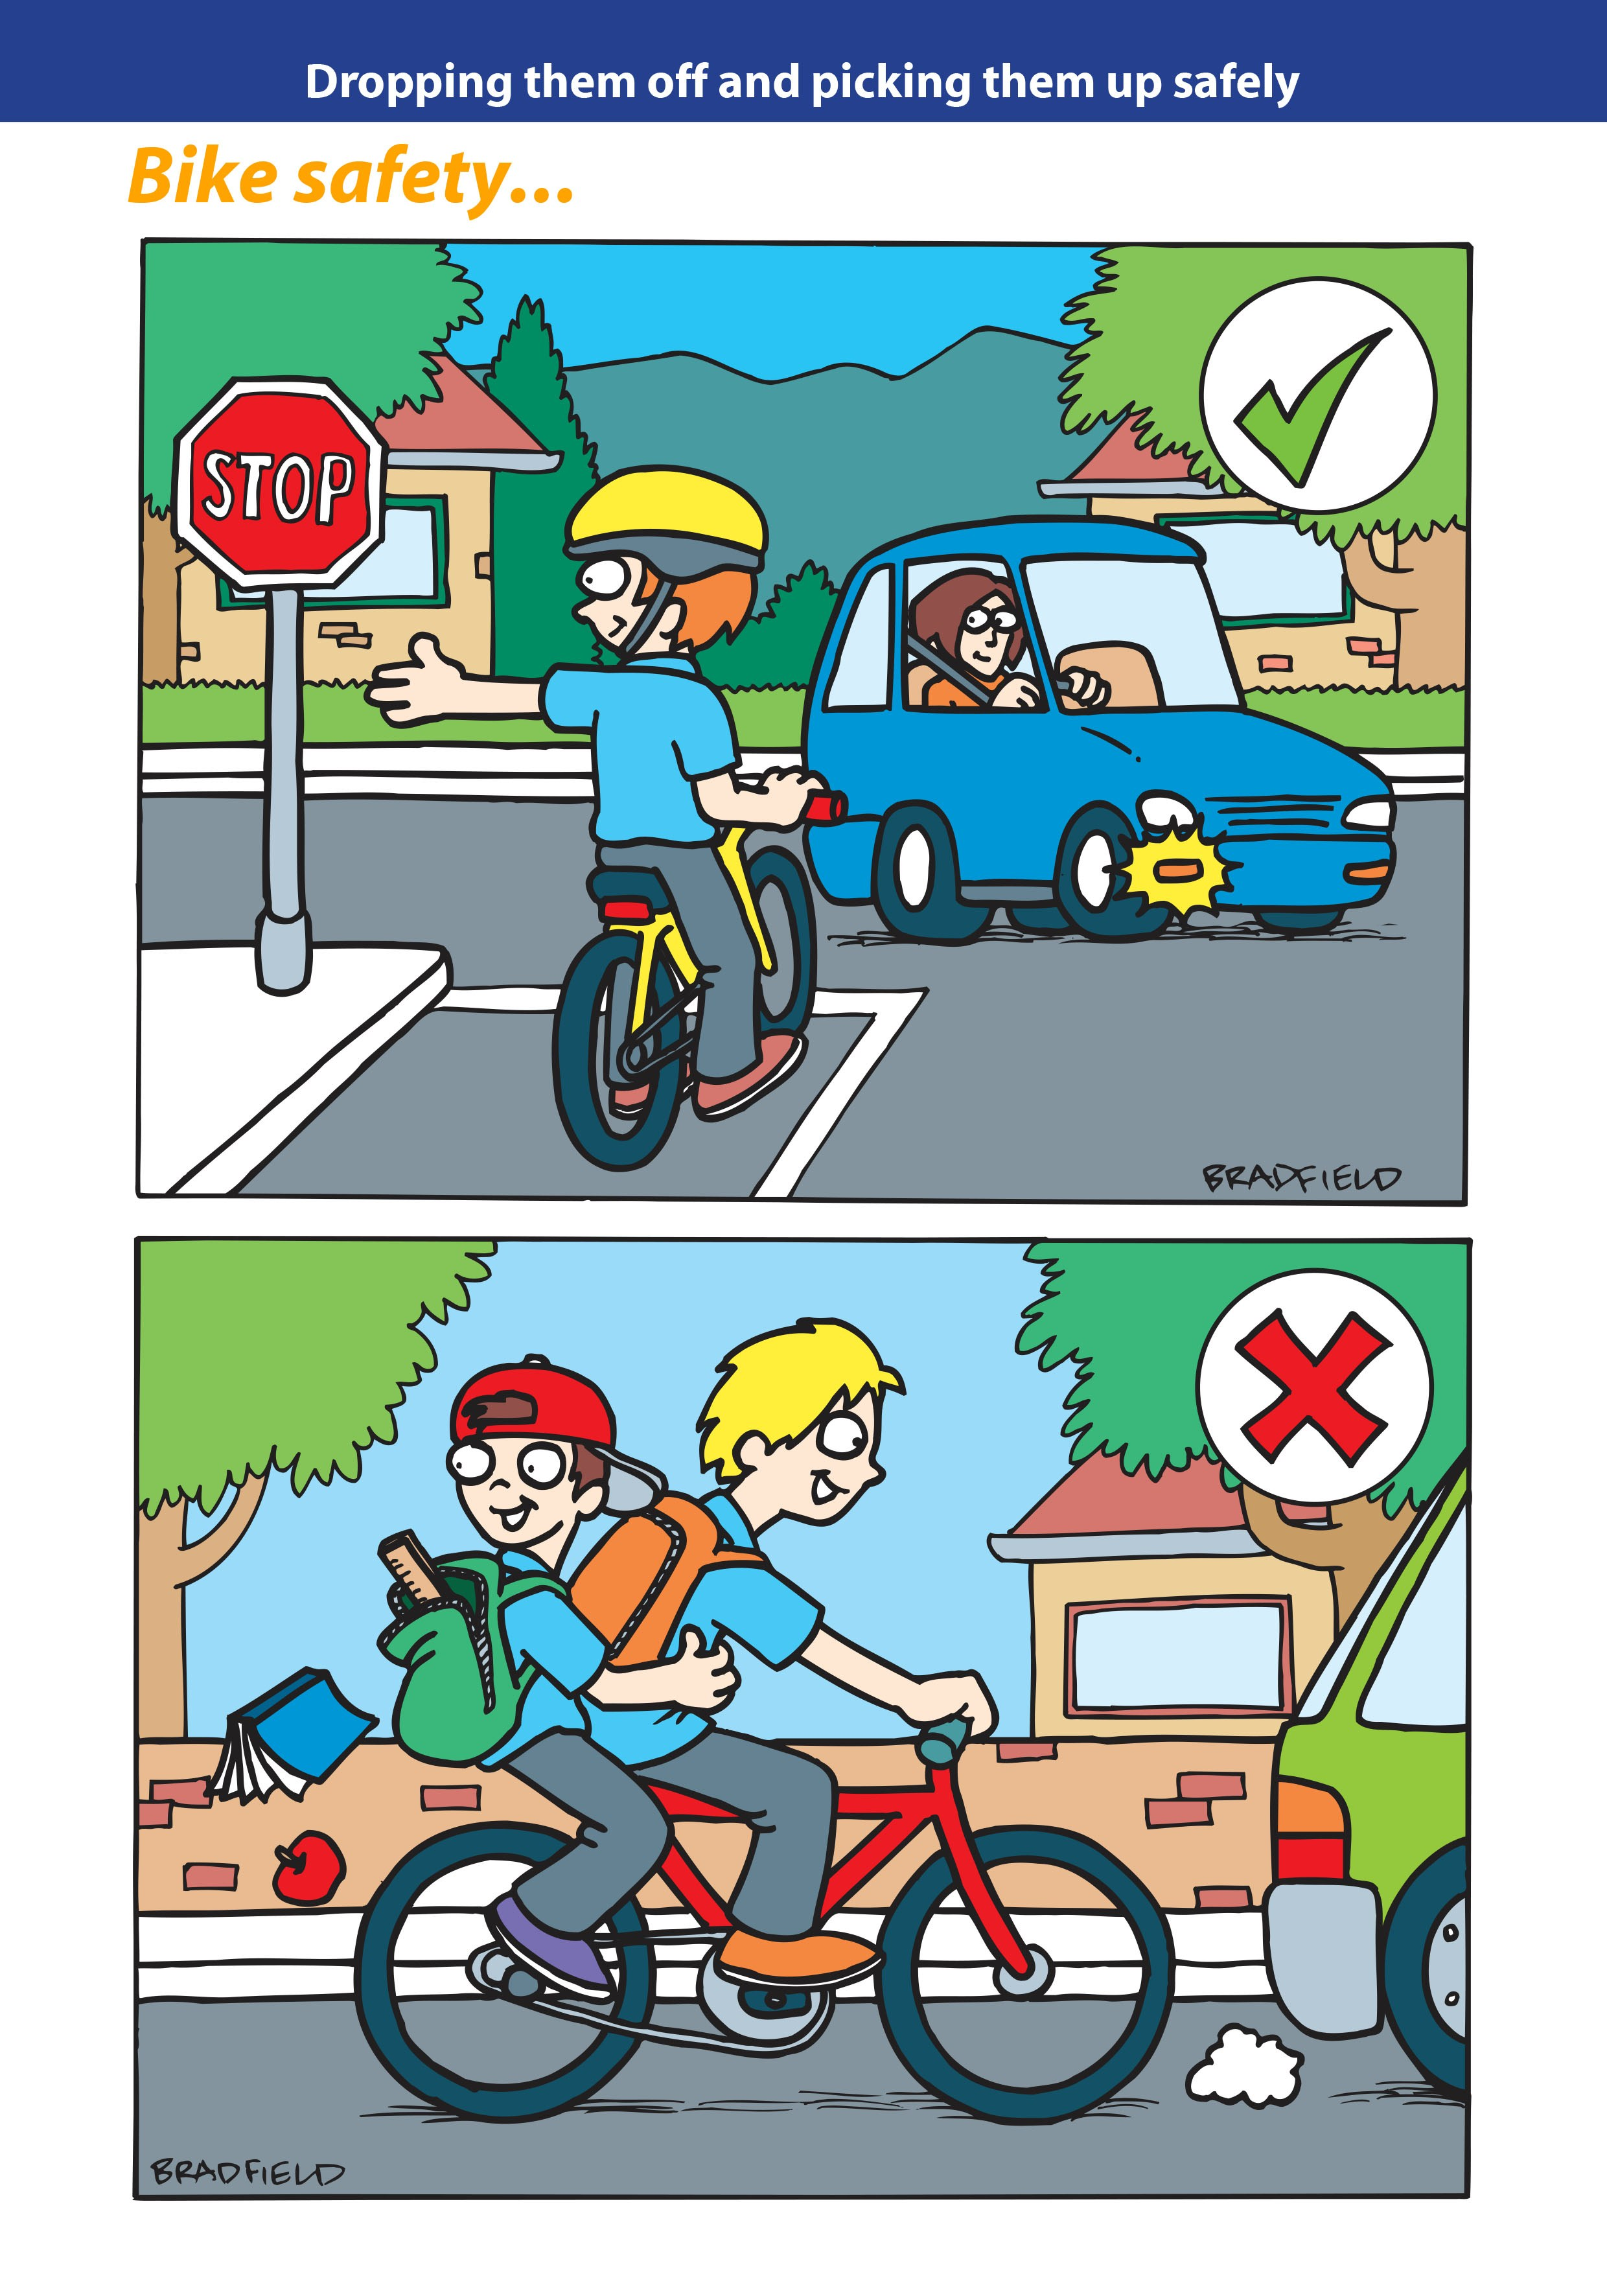 Safety Drawing Images at GetDrawings.com | Free for personal use ...